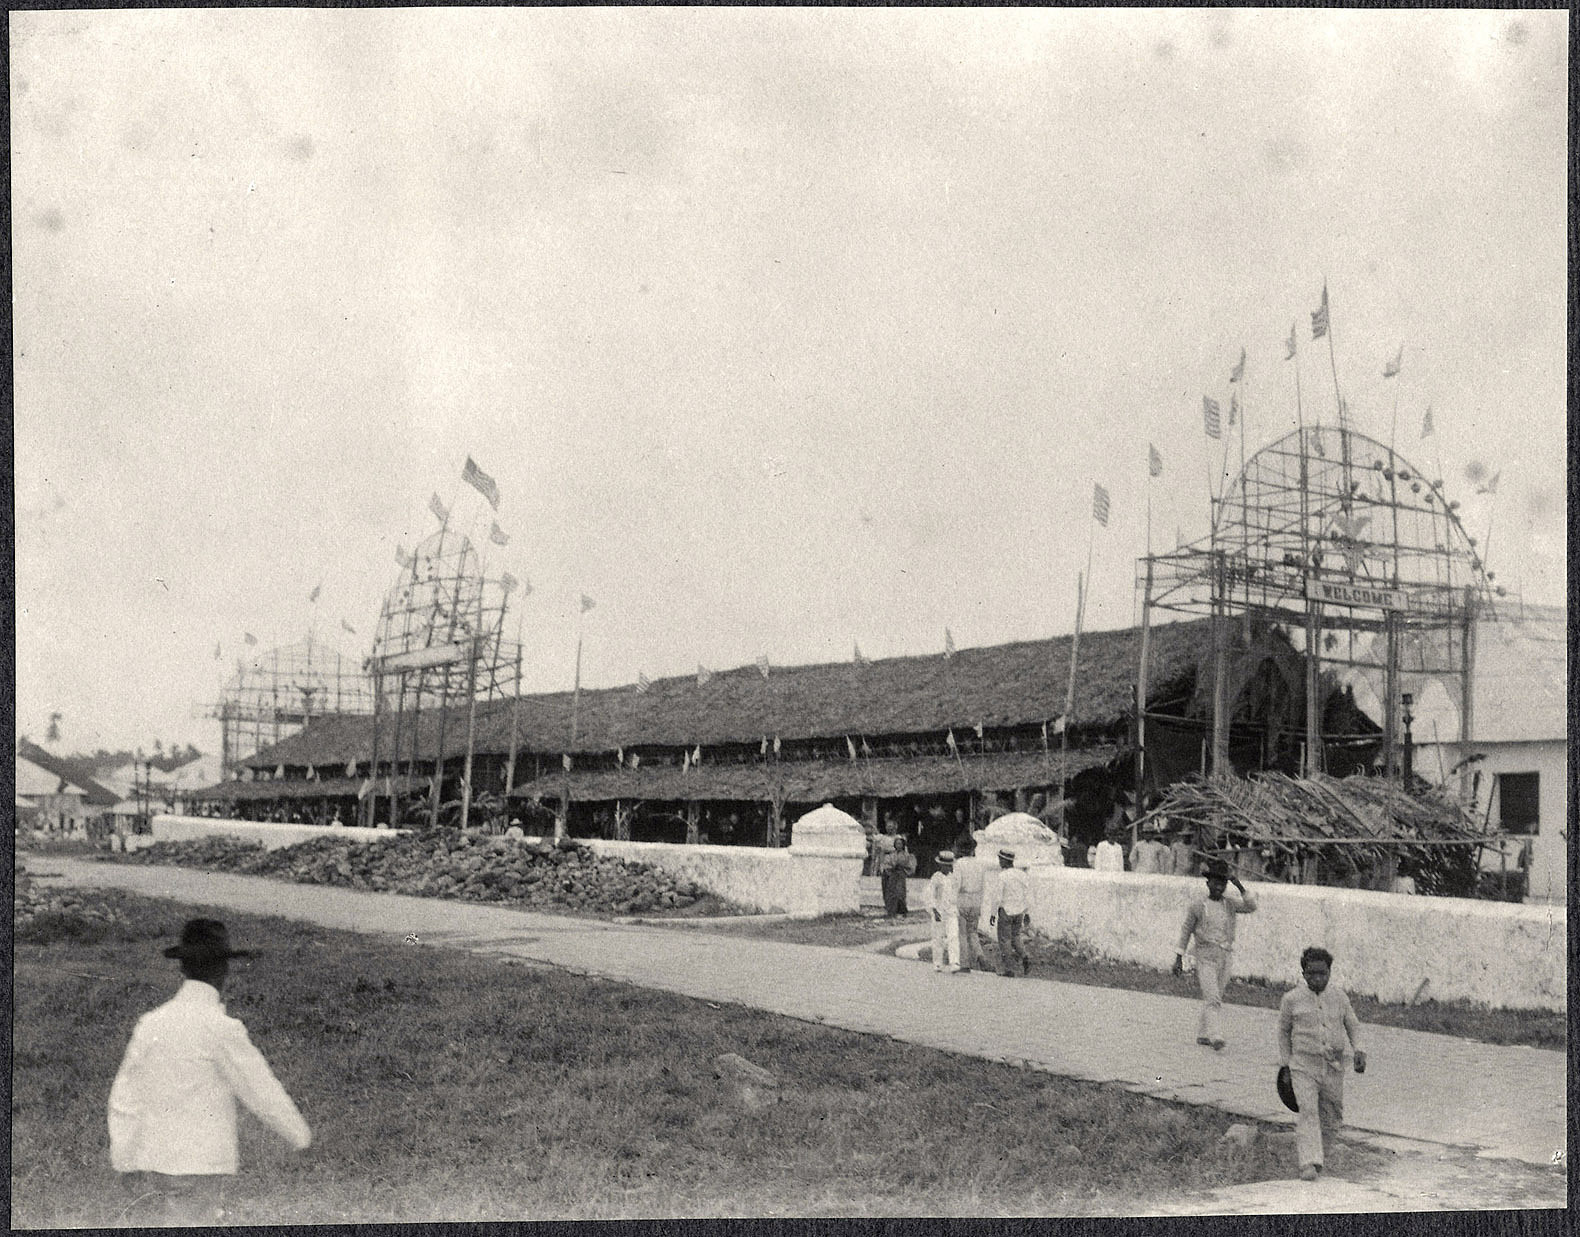 Long building with decorations, possibly Legazpi